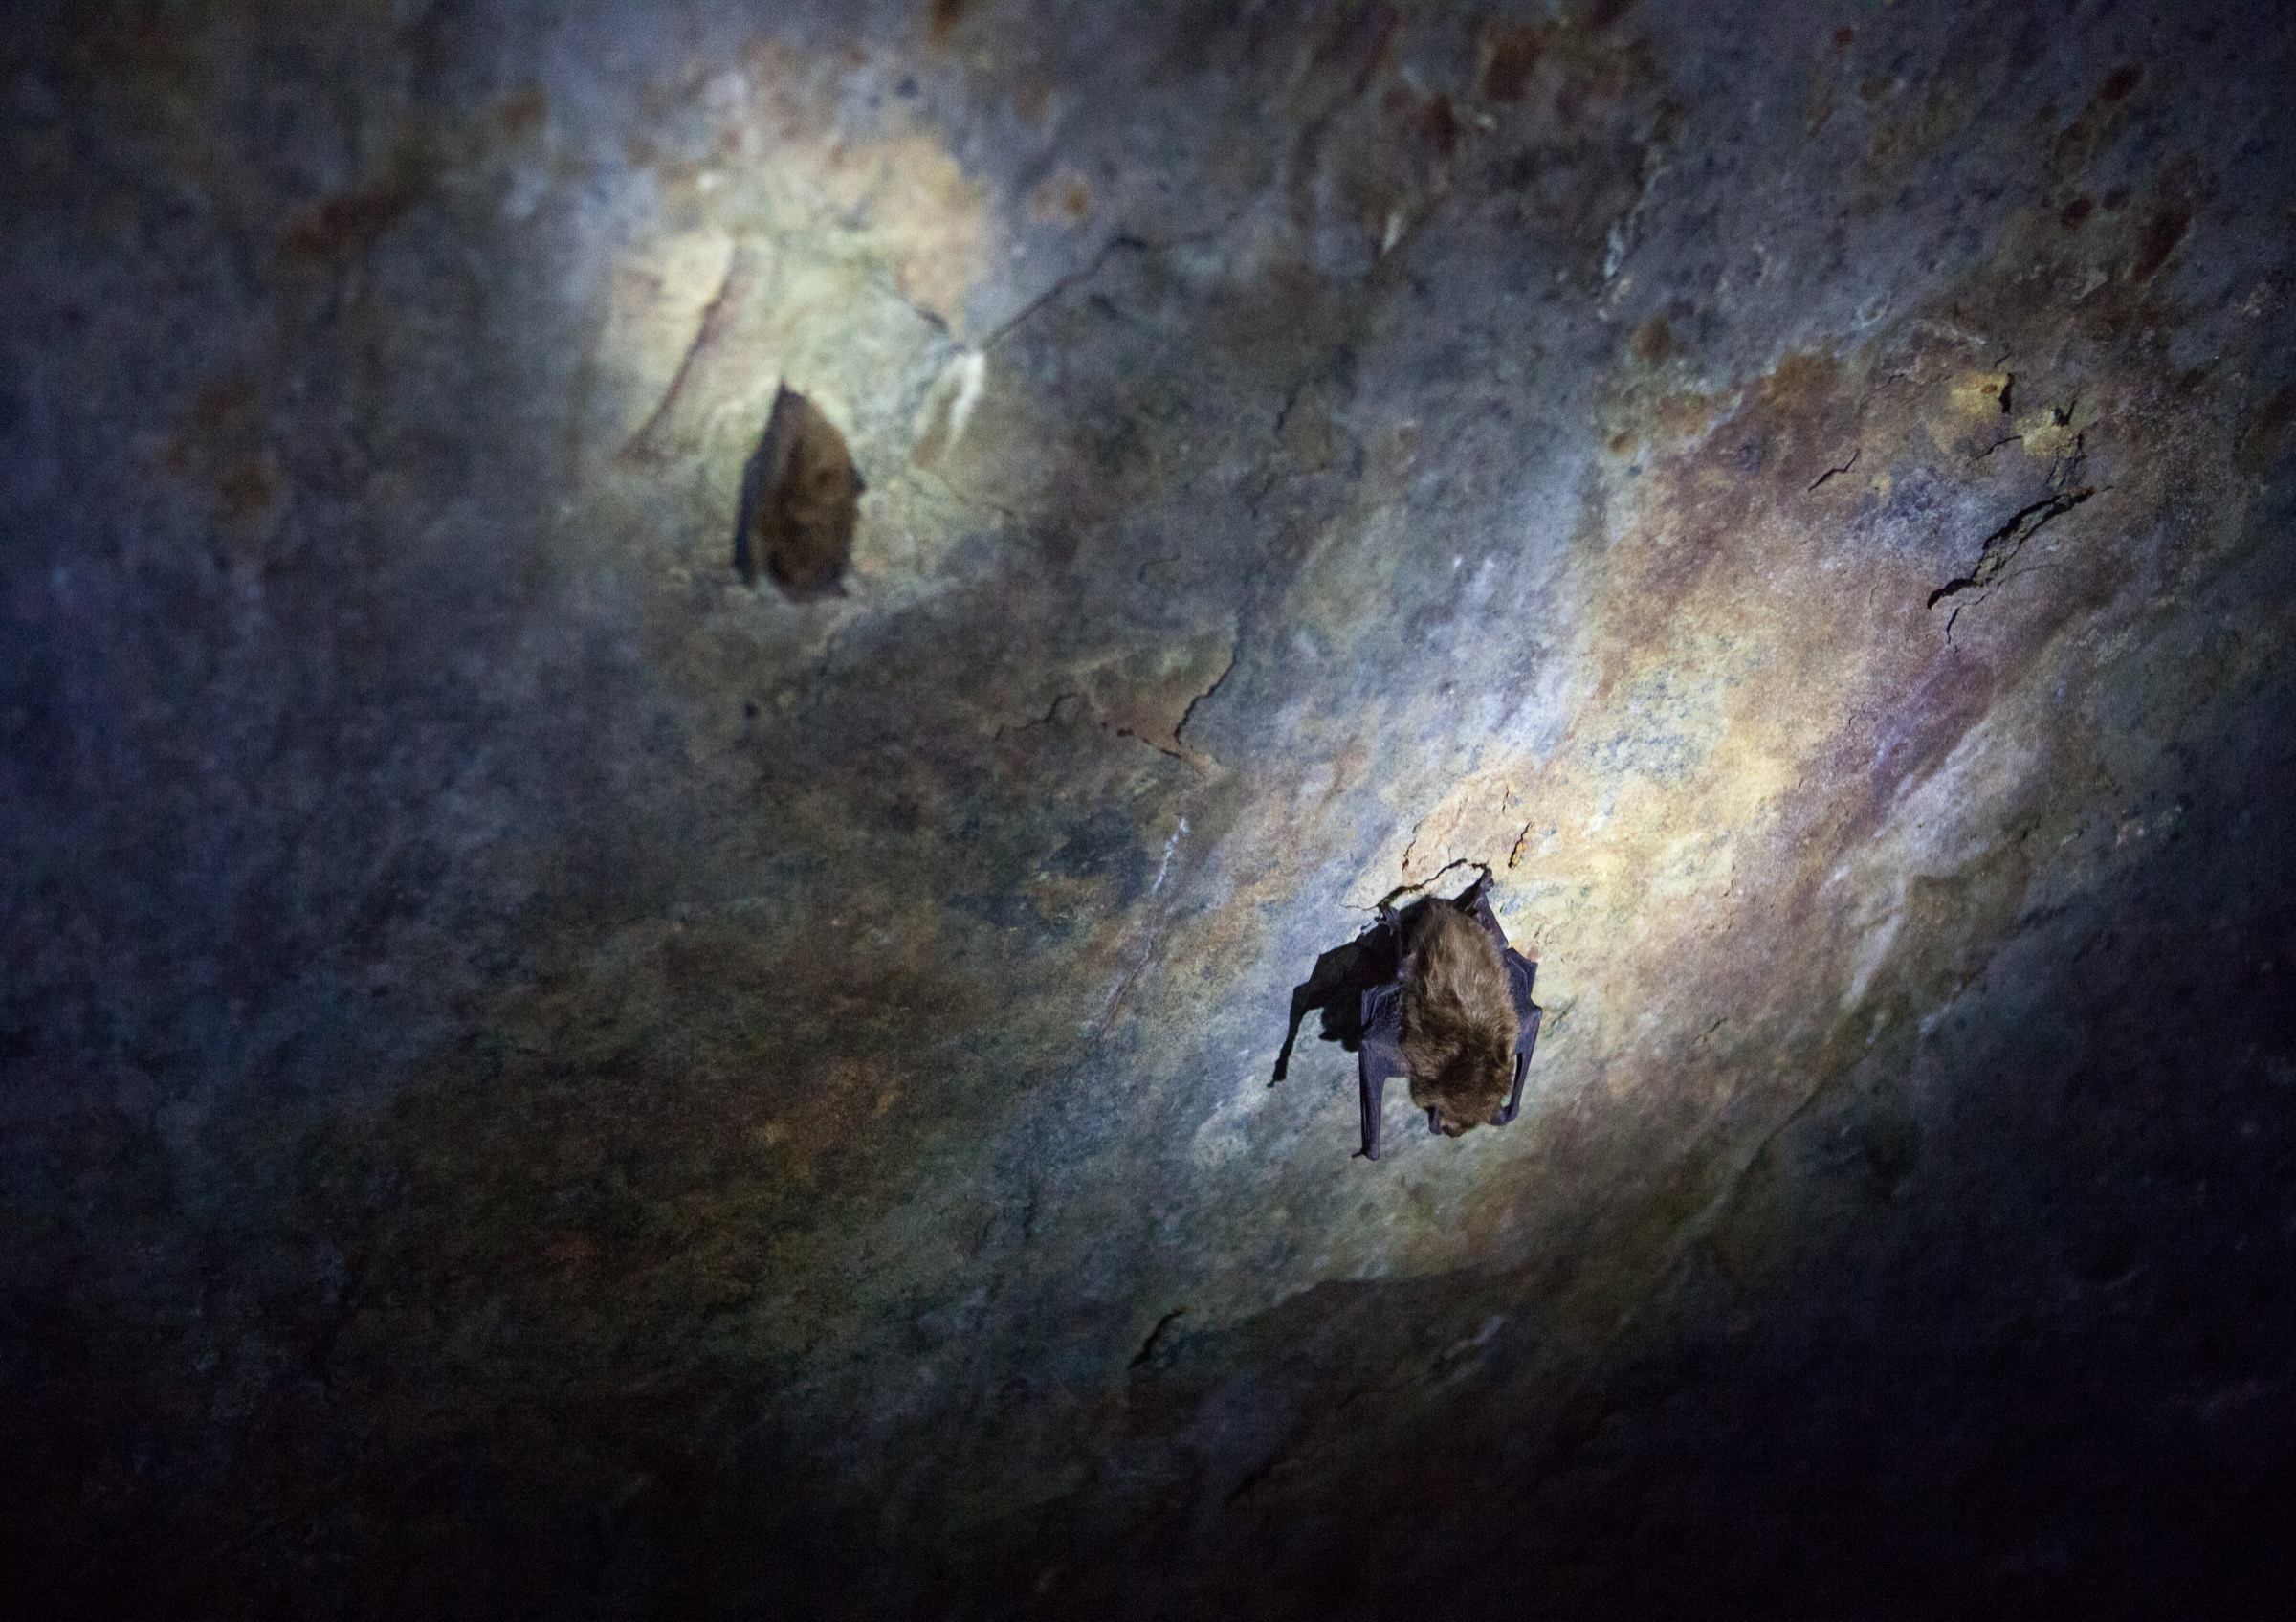 Hibernating bats cling to the ceiling of a cave in Upstate New York. Photograph by Geoffrey Giller